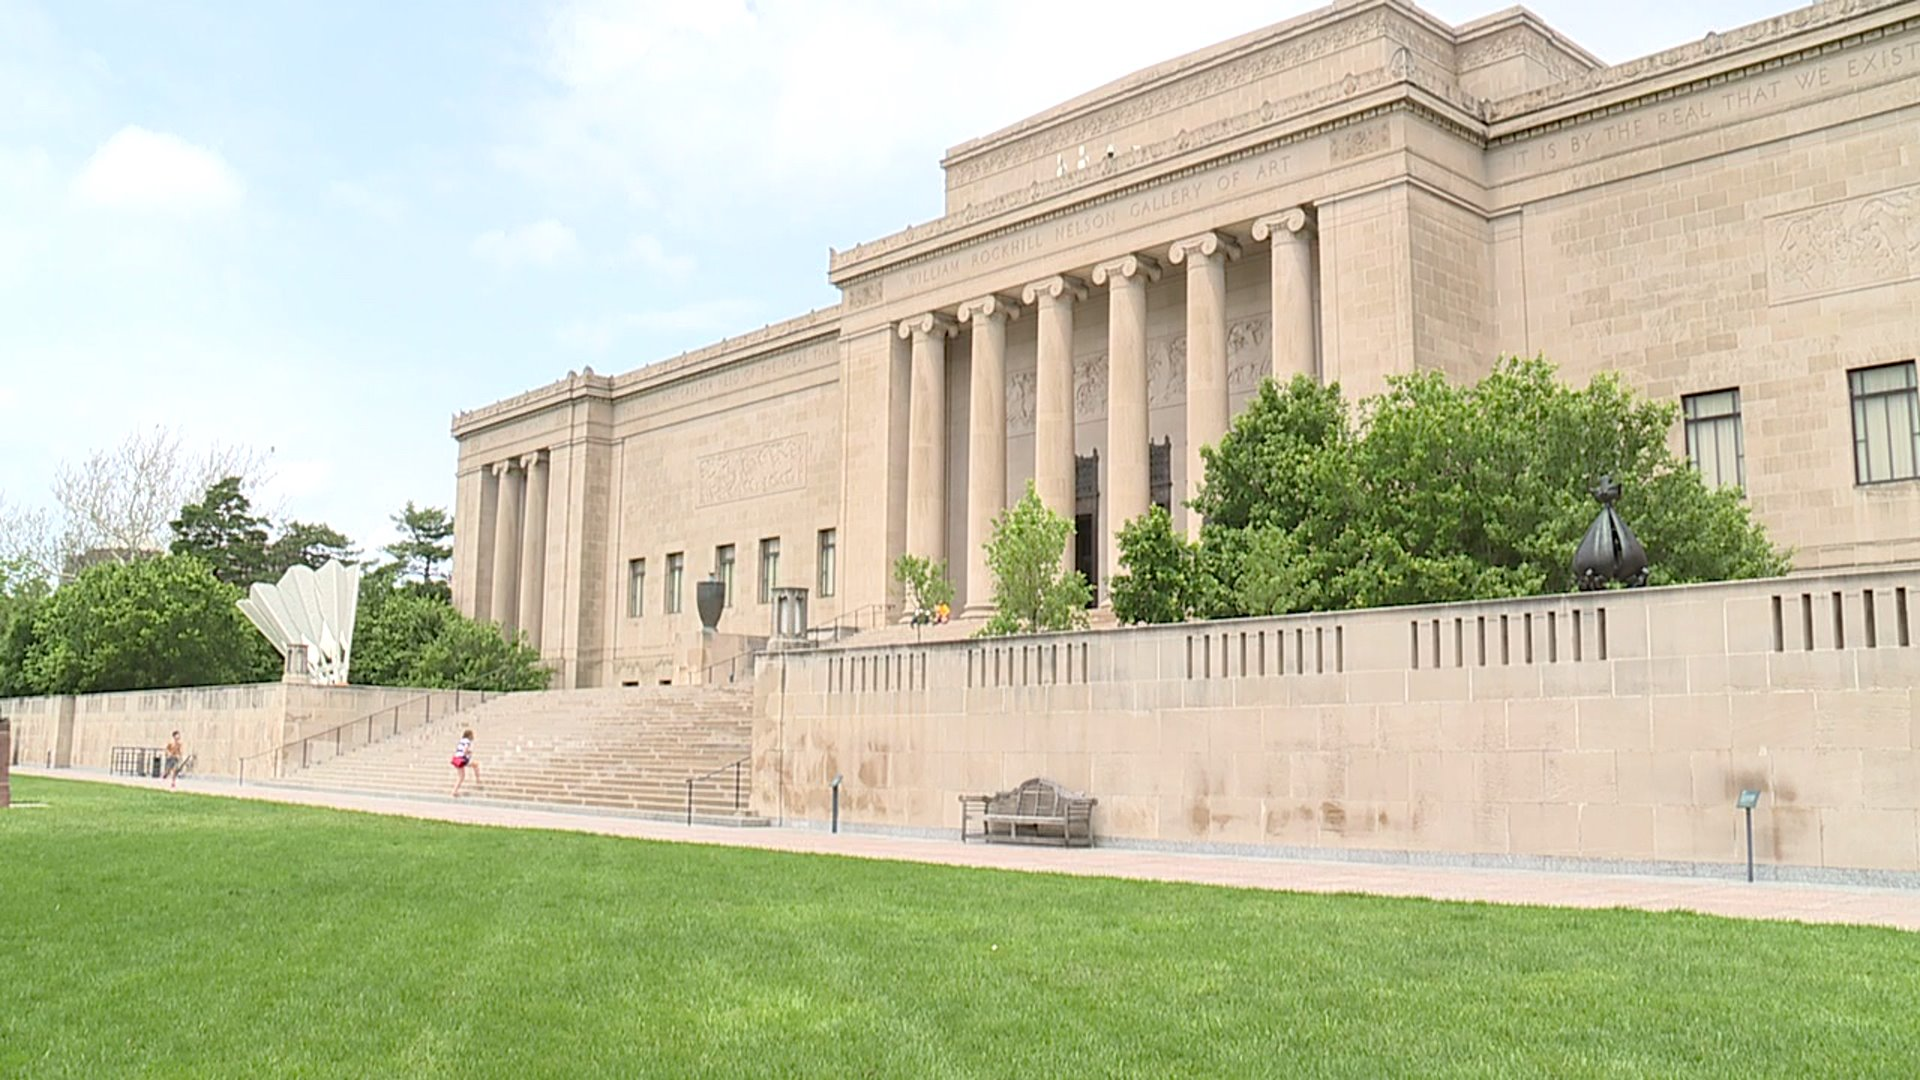 Nelson-Atkins Museum spring picture